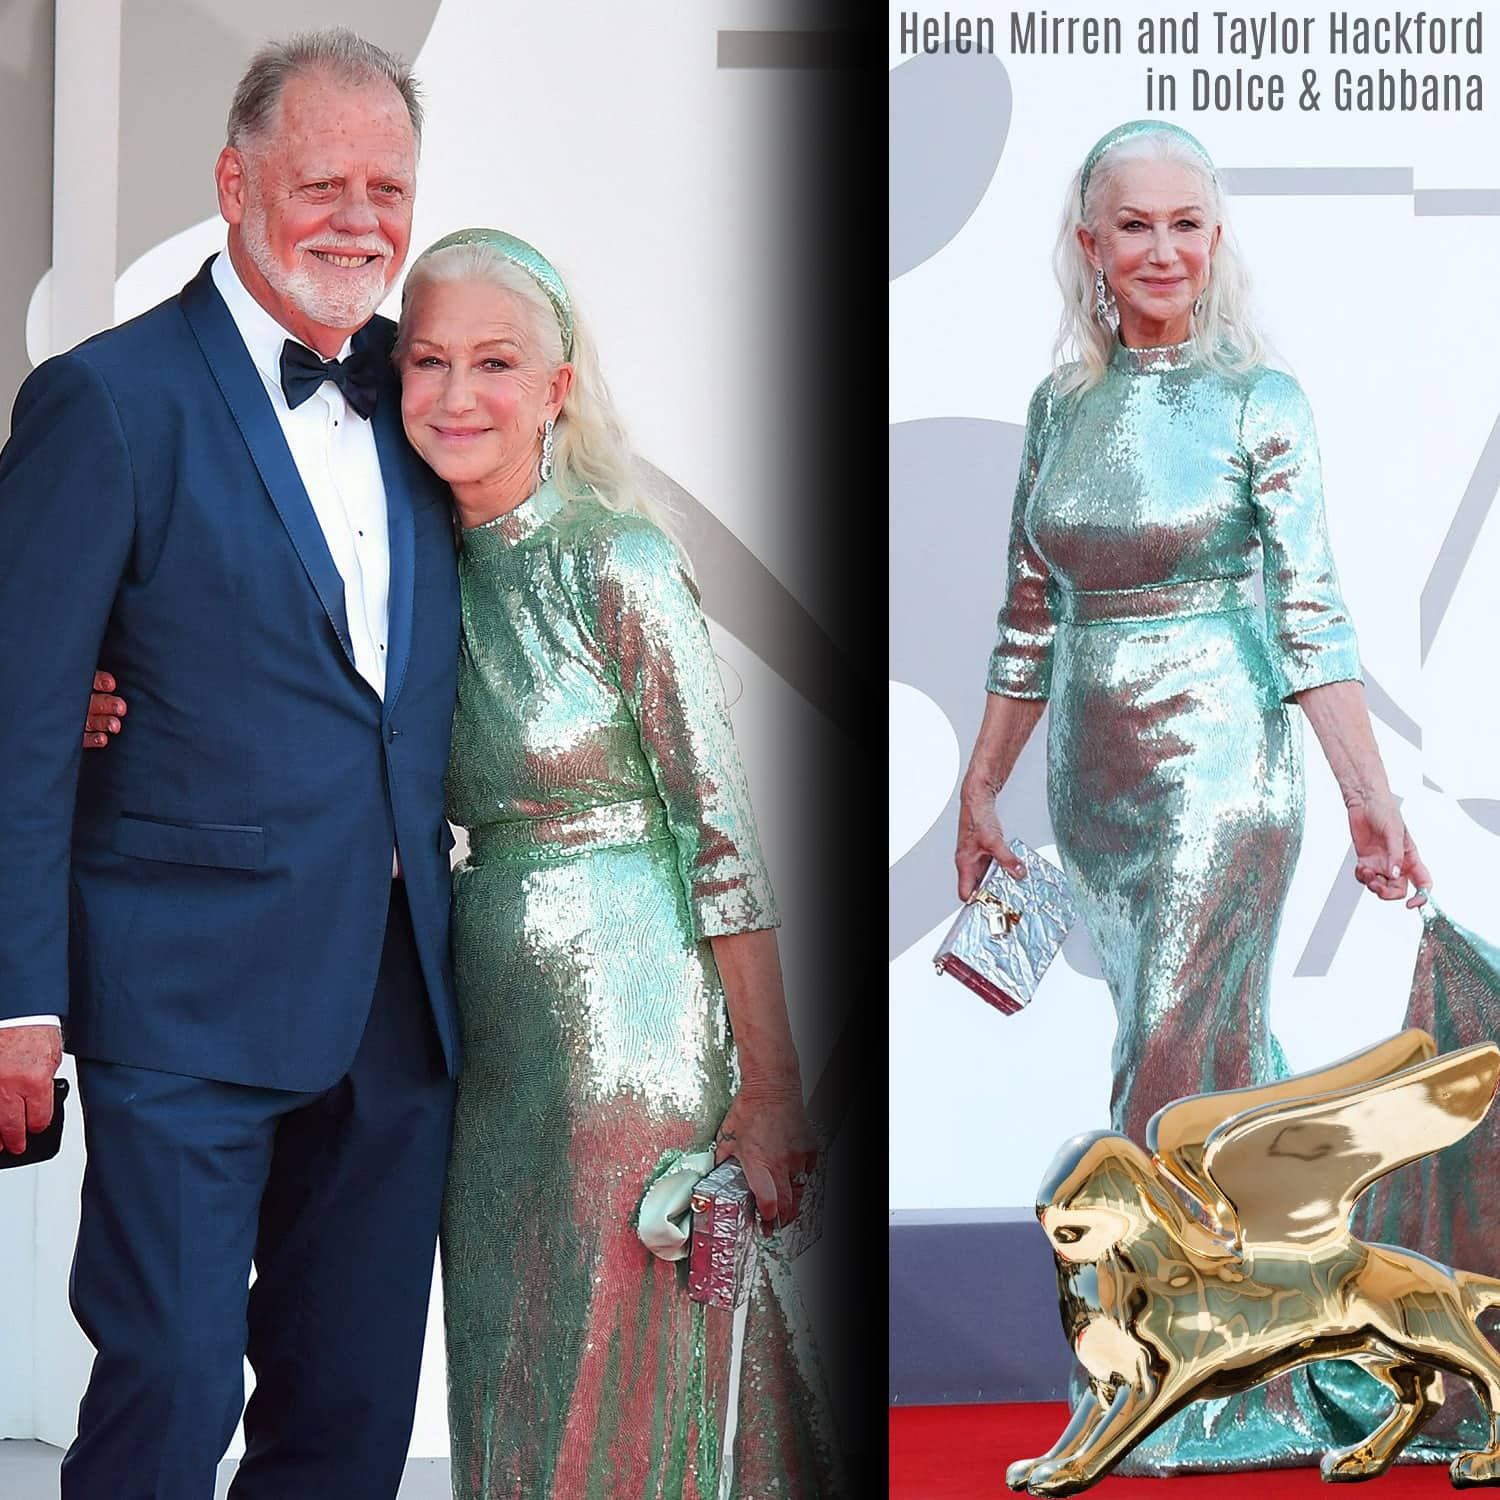 Helen Mirren and Taylor Hackford in Dolce Gabbana at 78th Venice Film Festival by RUNWAY MAGAZINE